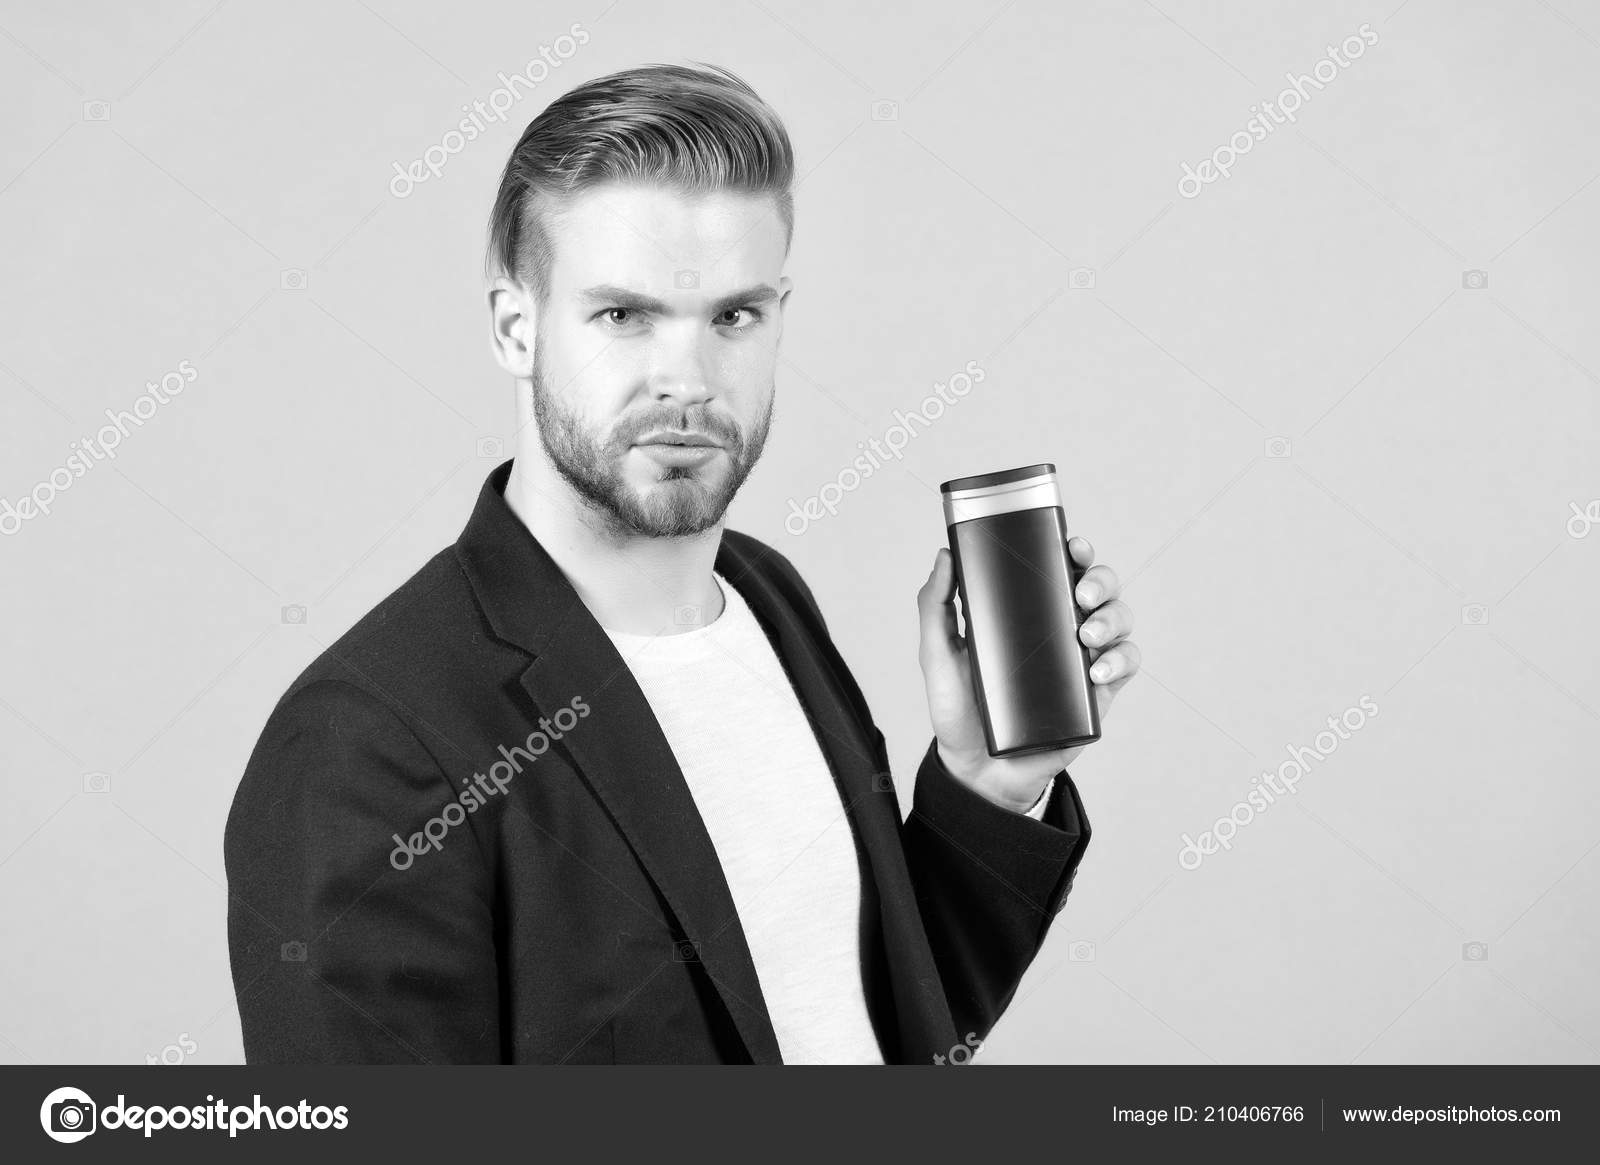 Manager With Shampoo Or Gel Bottle In Hand Bearded Man With Stylish